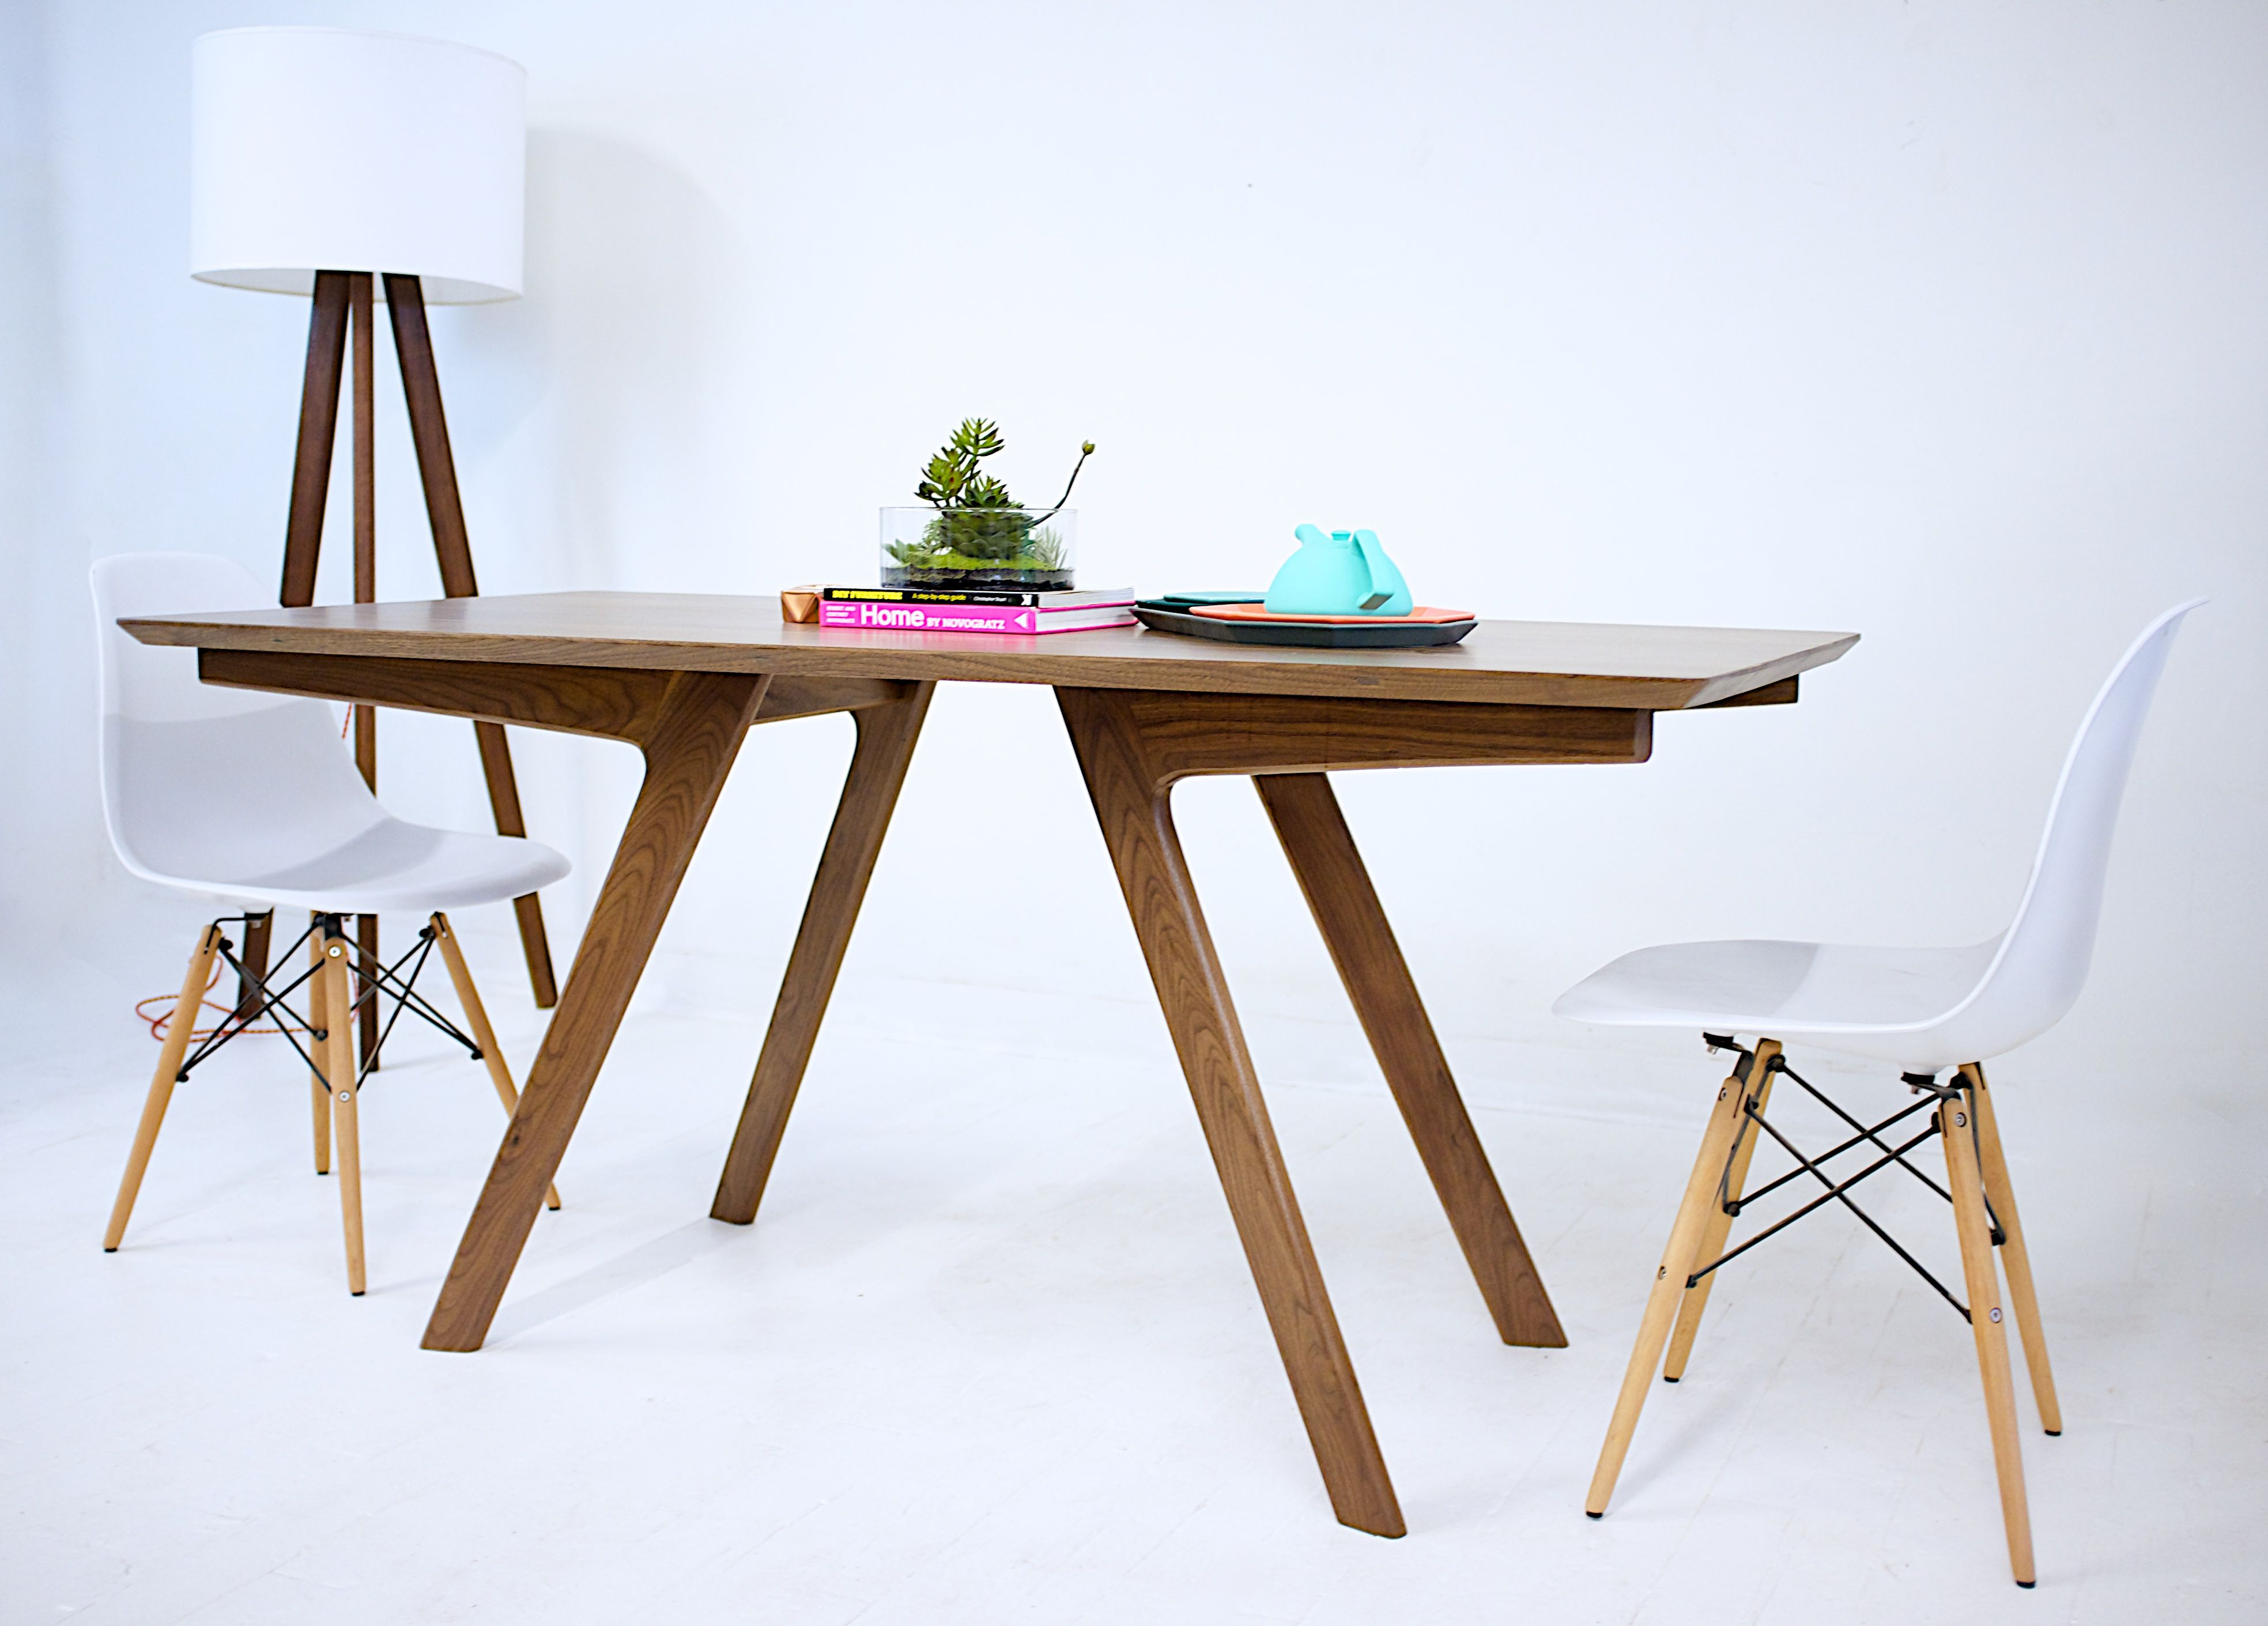 Cool Hand Crafted The Boomerang Mid Century Modern Solid Walnut Dining Table By Moderncreve With